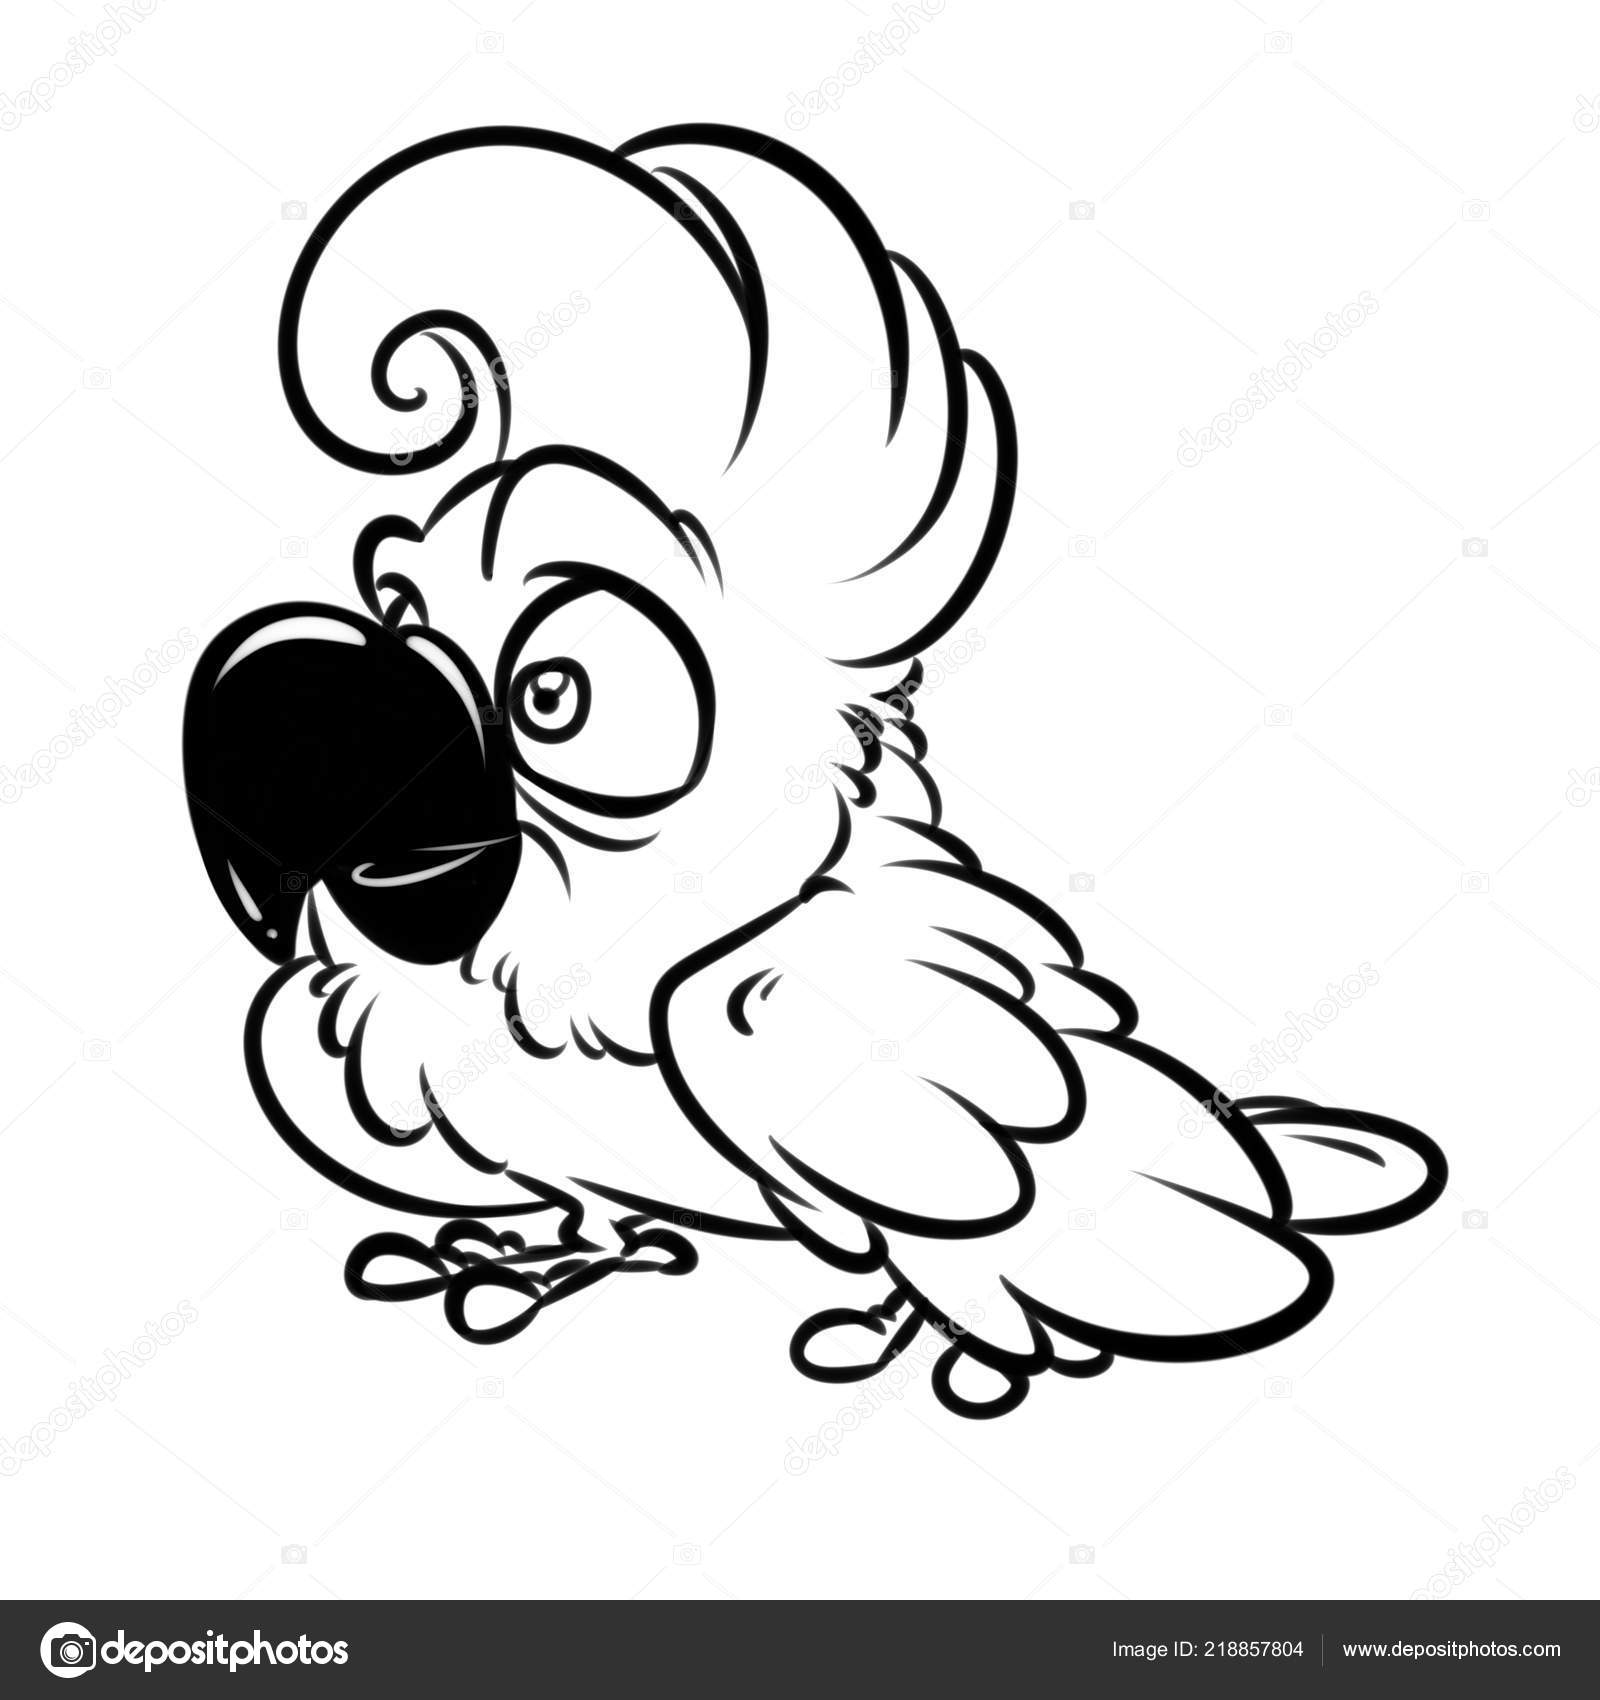 Funny Parrot Cockatoo Cartoon Illustration Isolated Image Coloring